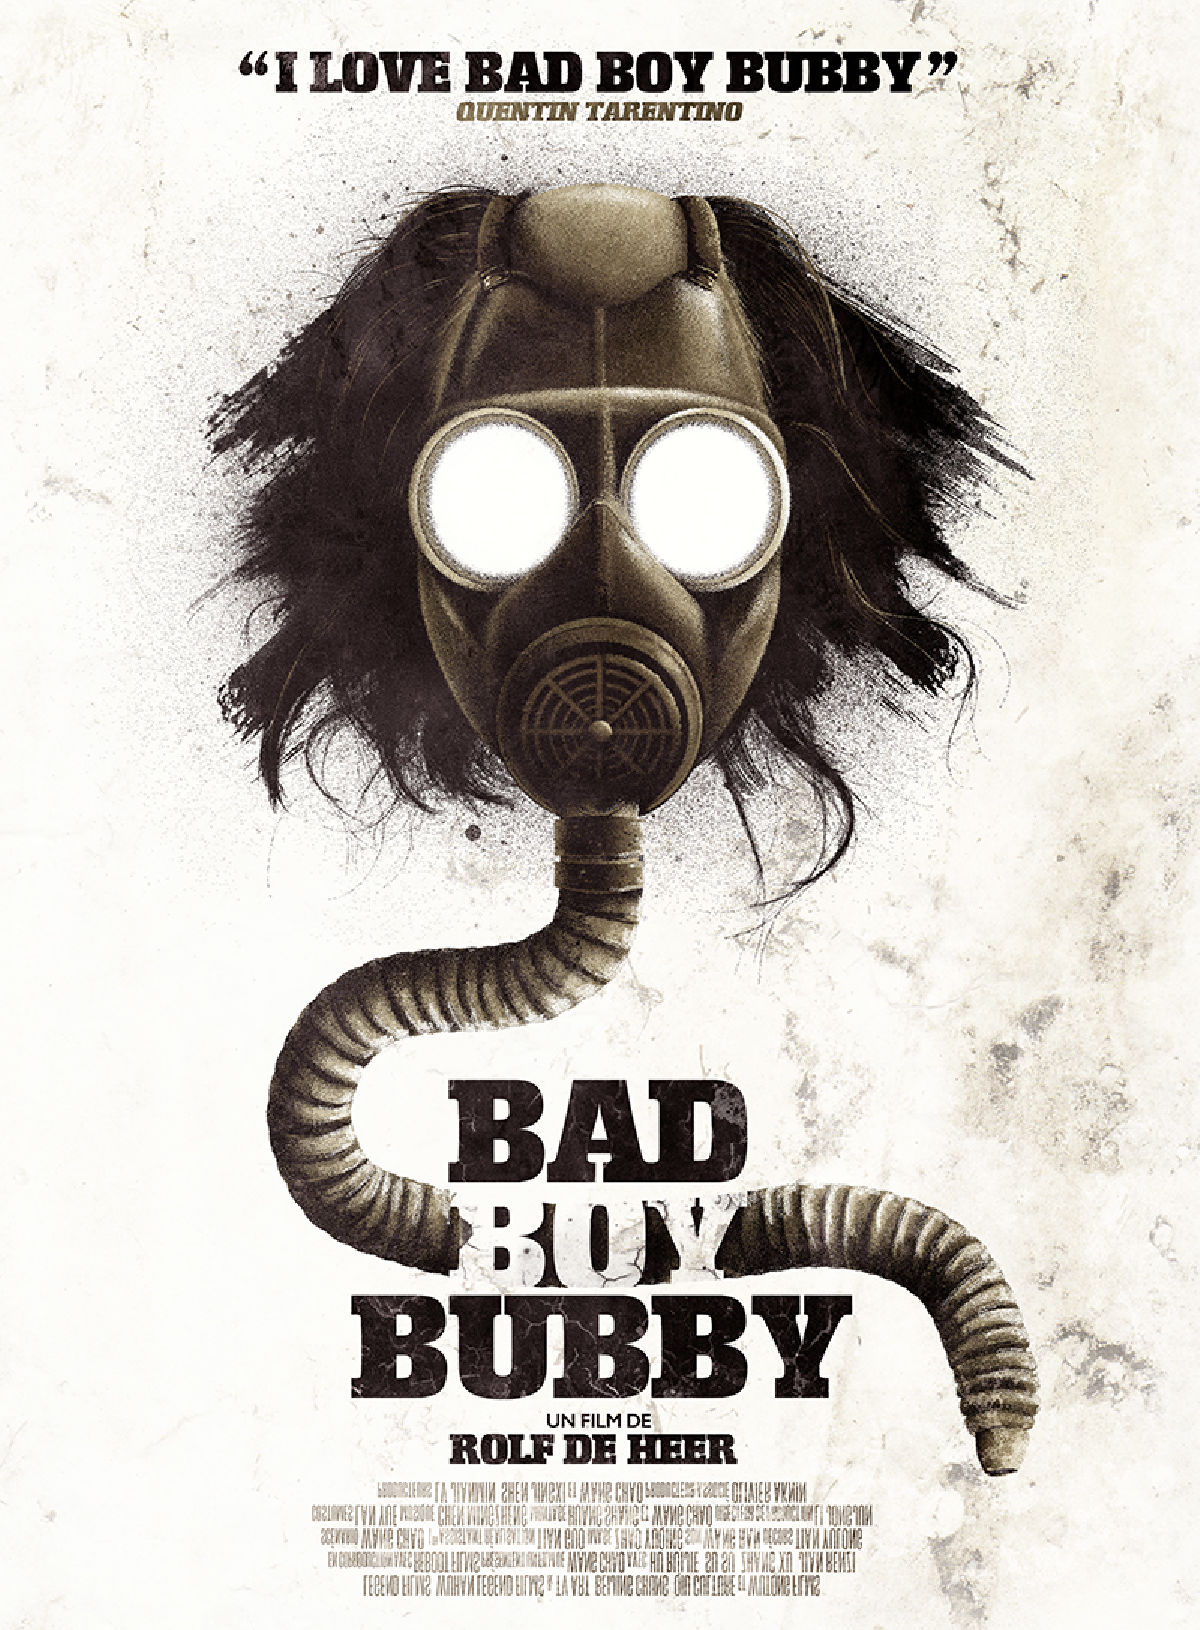 'Bad Boy Bubby' movie poster